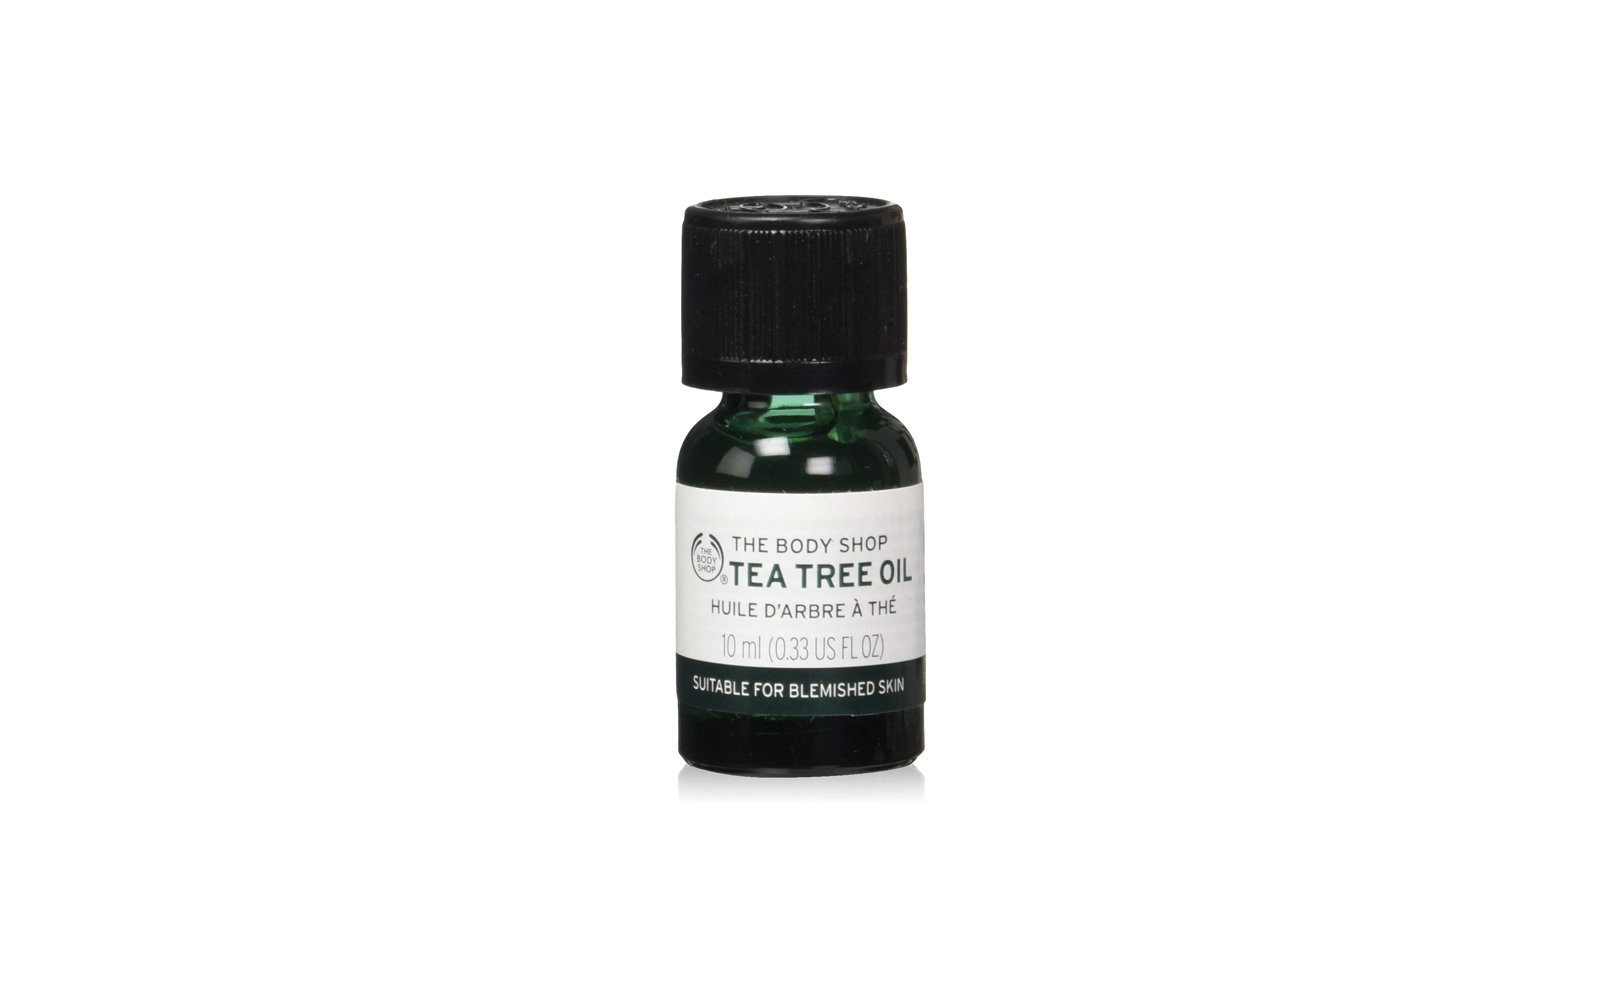 For Minor Cuts or Blemishes: The Body Shop Tea Tree Oil